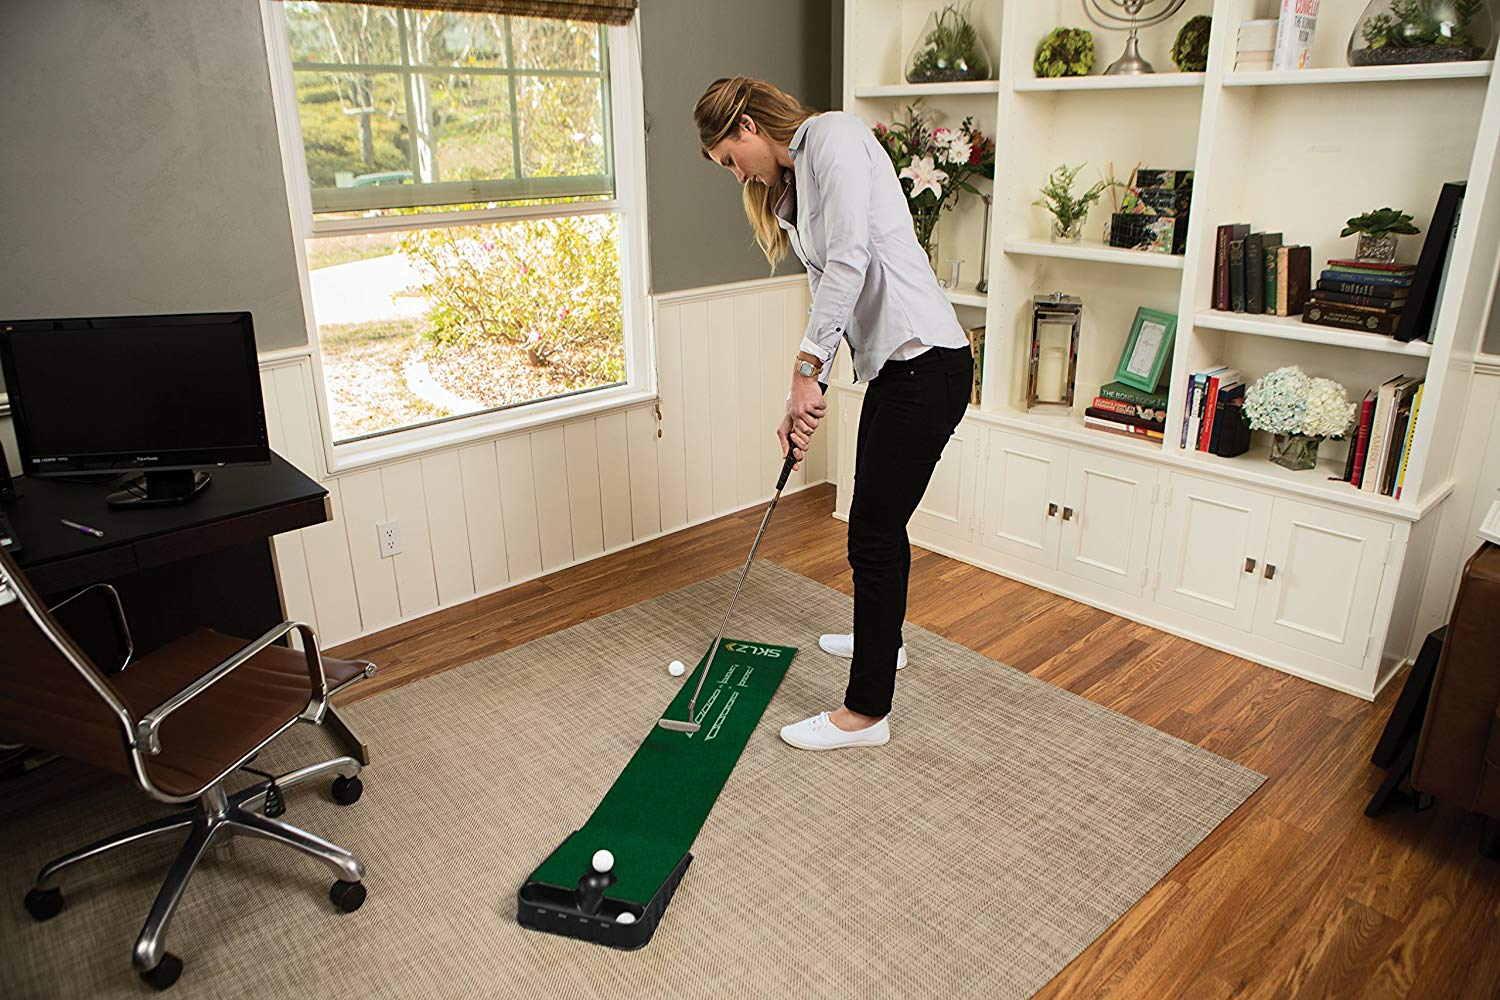 SKLZ Accelerator Pro Indoor Putting Green hot sports gift guides